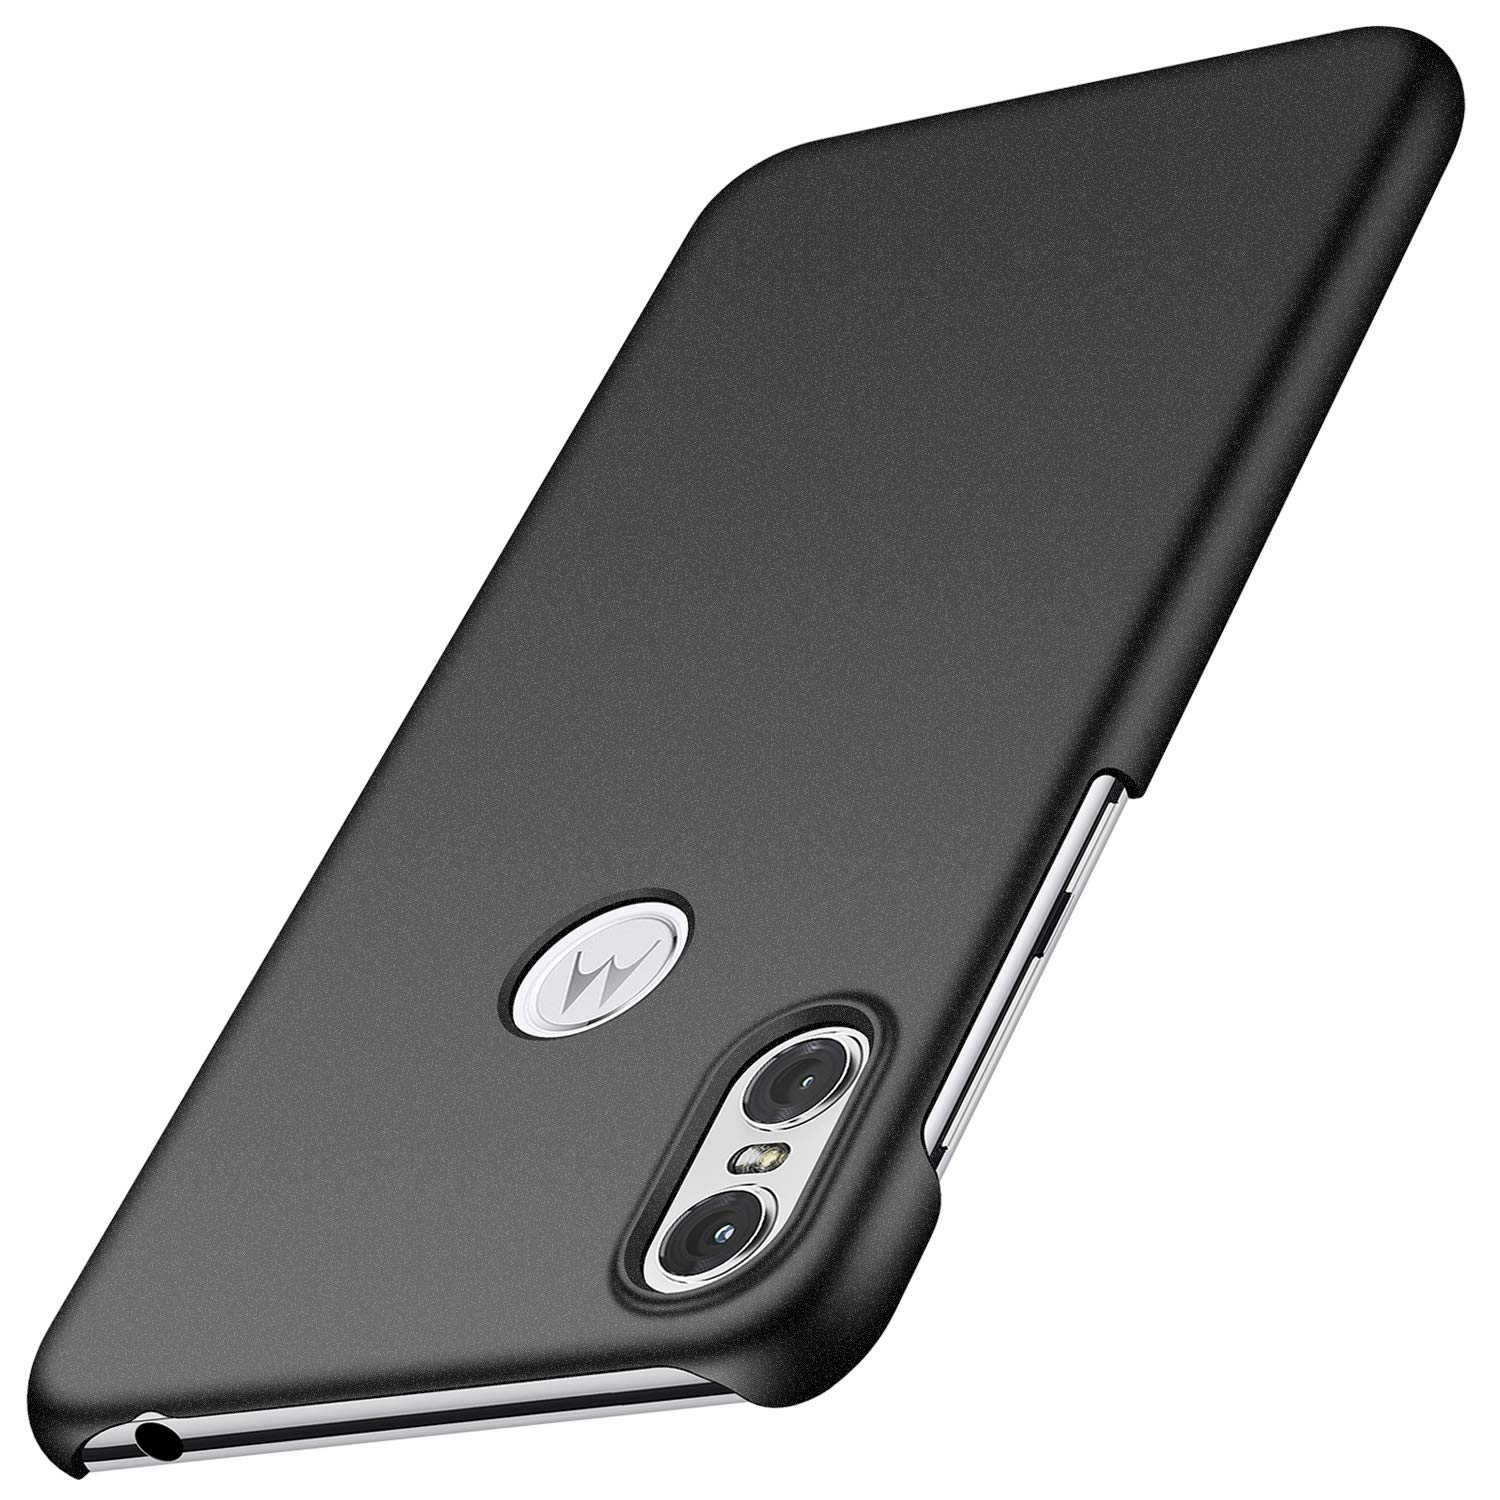 Amazon.com: Moto One Case, Almiao [Ultra-Thin] Minimalist ...